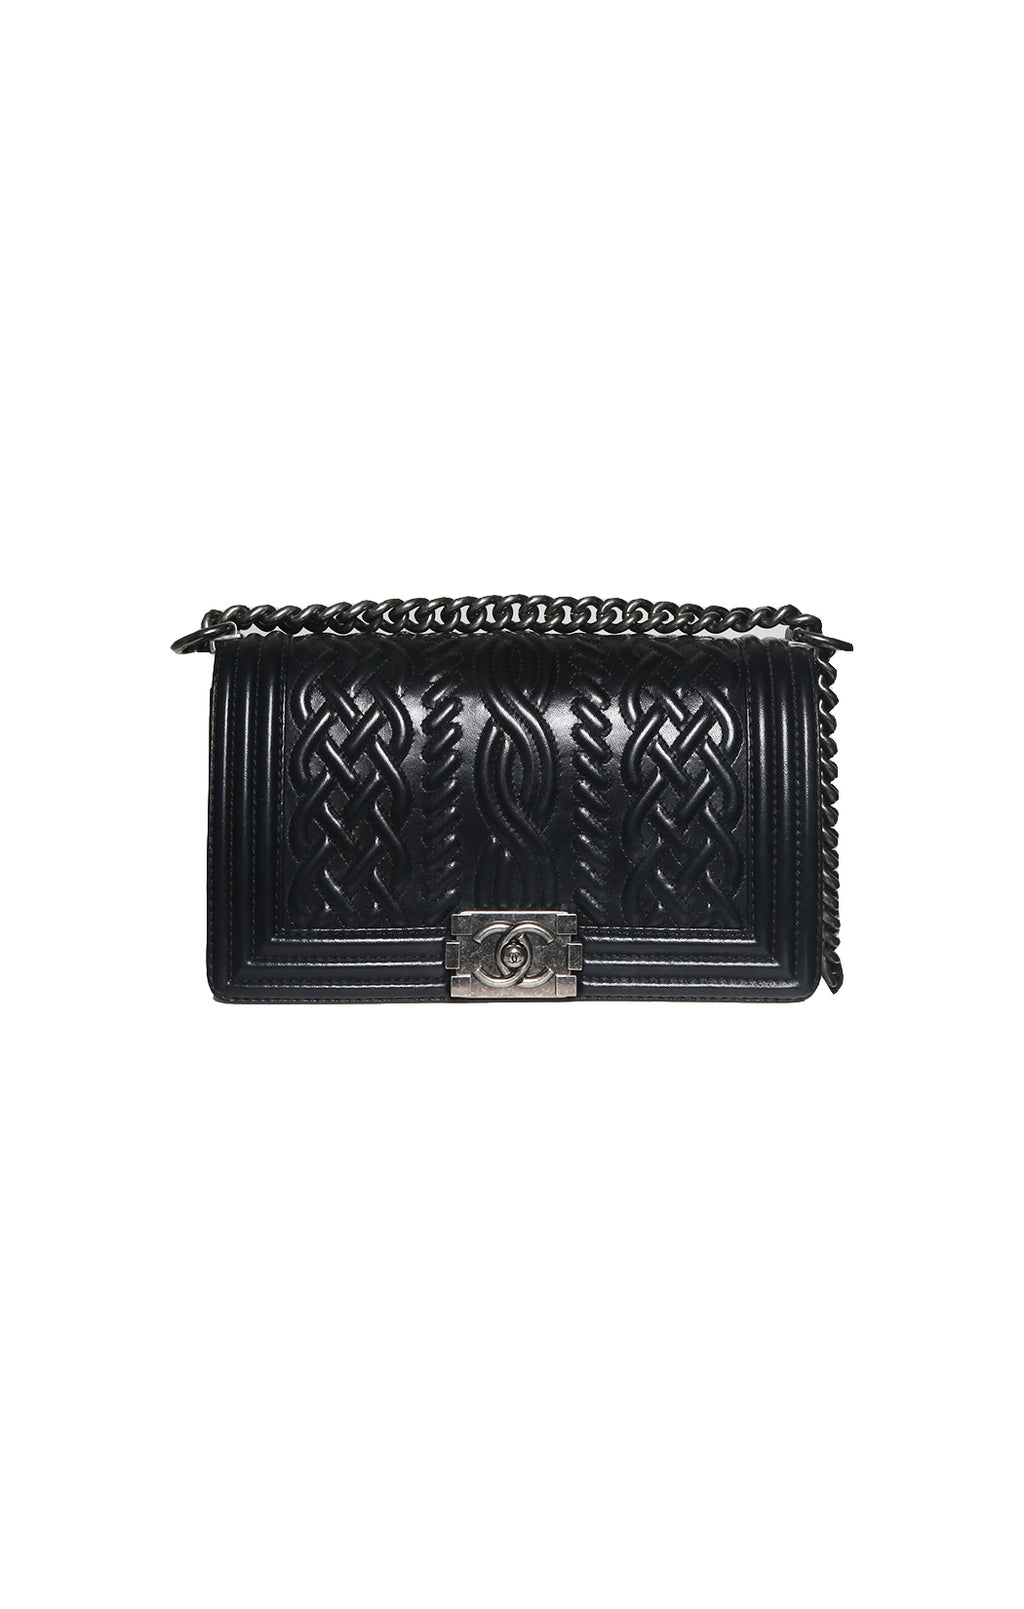 Front view of CHANEL  Black Boy Bag Size: 10 in. x 5.5 in. x 3.5 in.